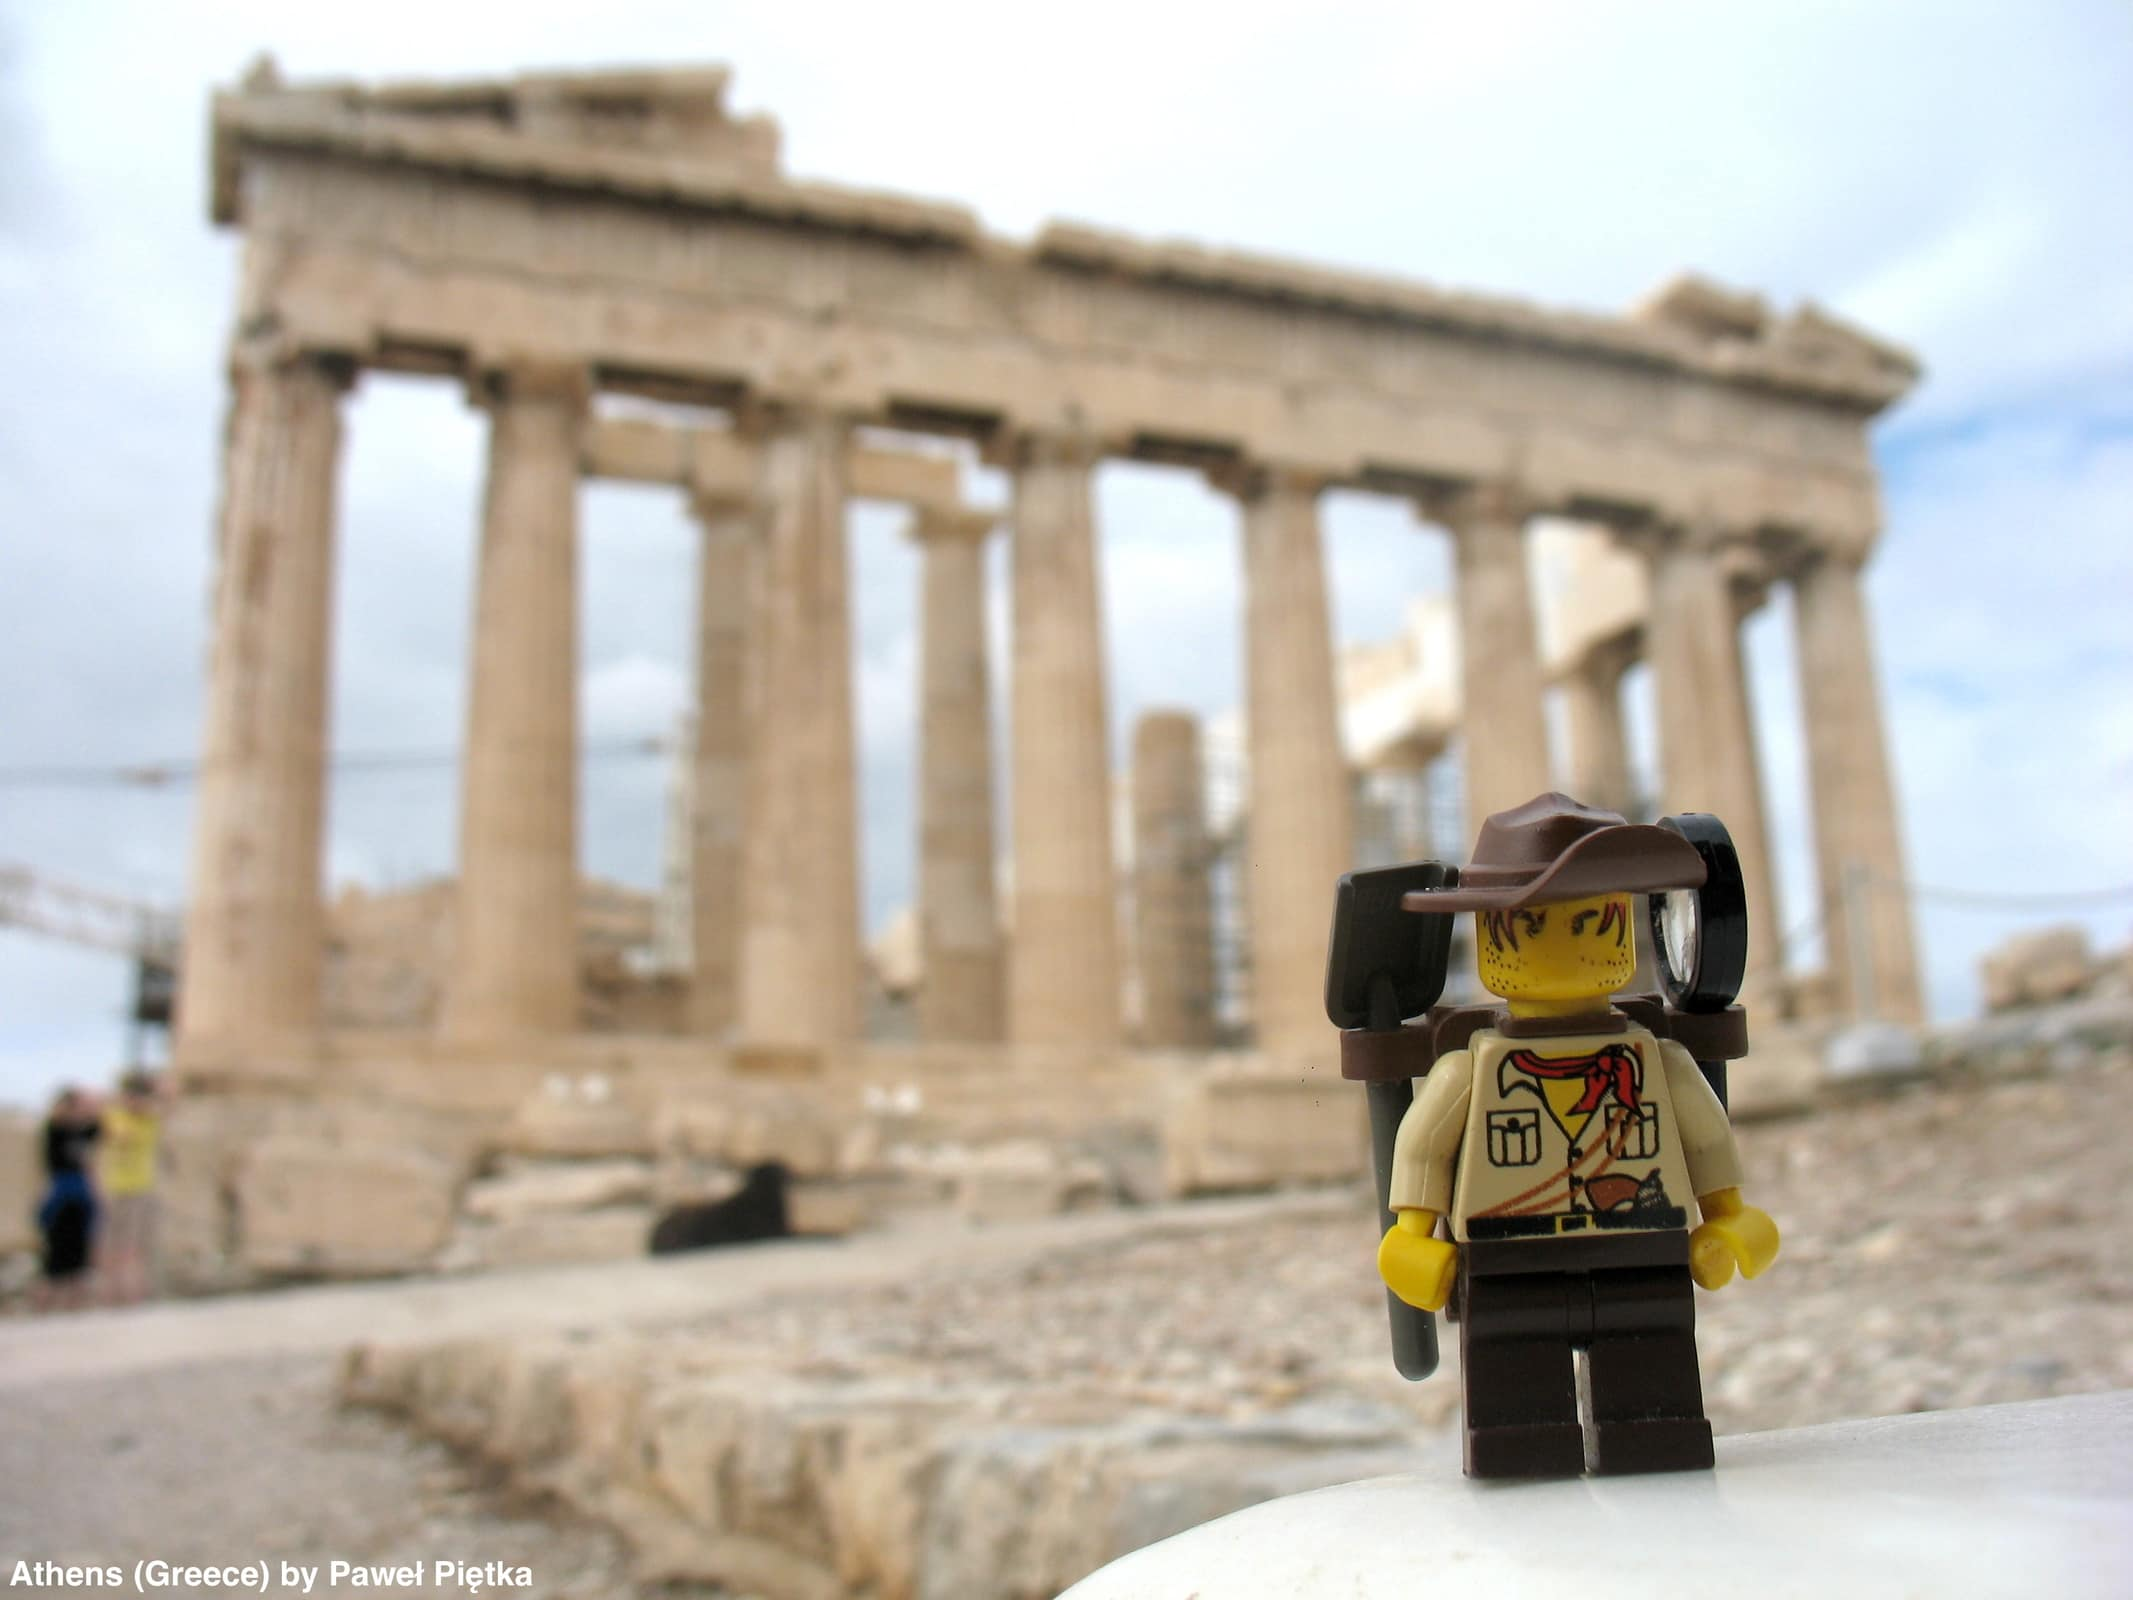 Athens (Greece) - Acropolis, Parthenon